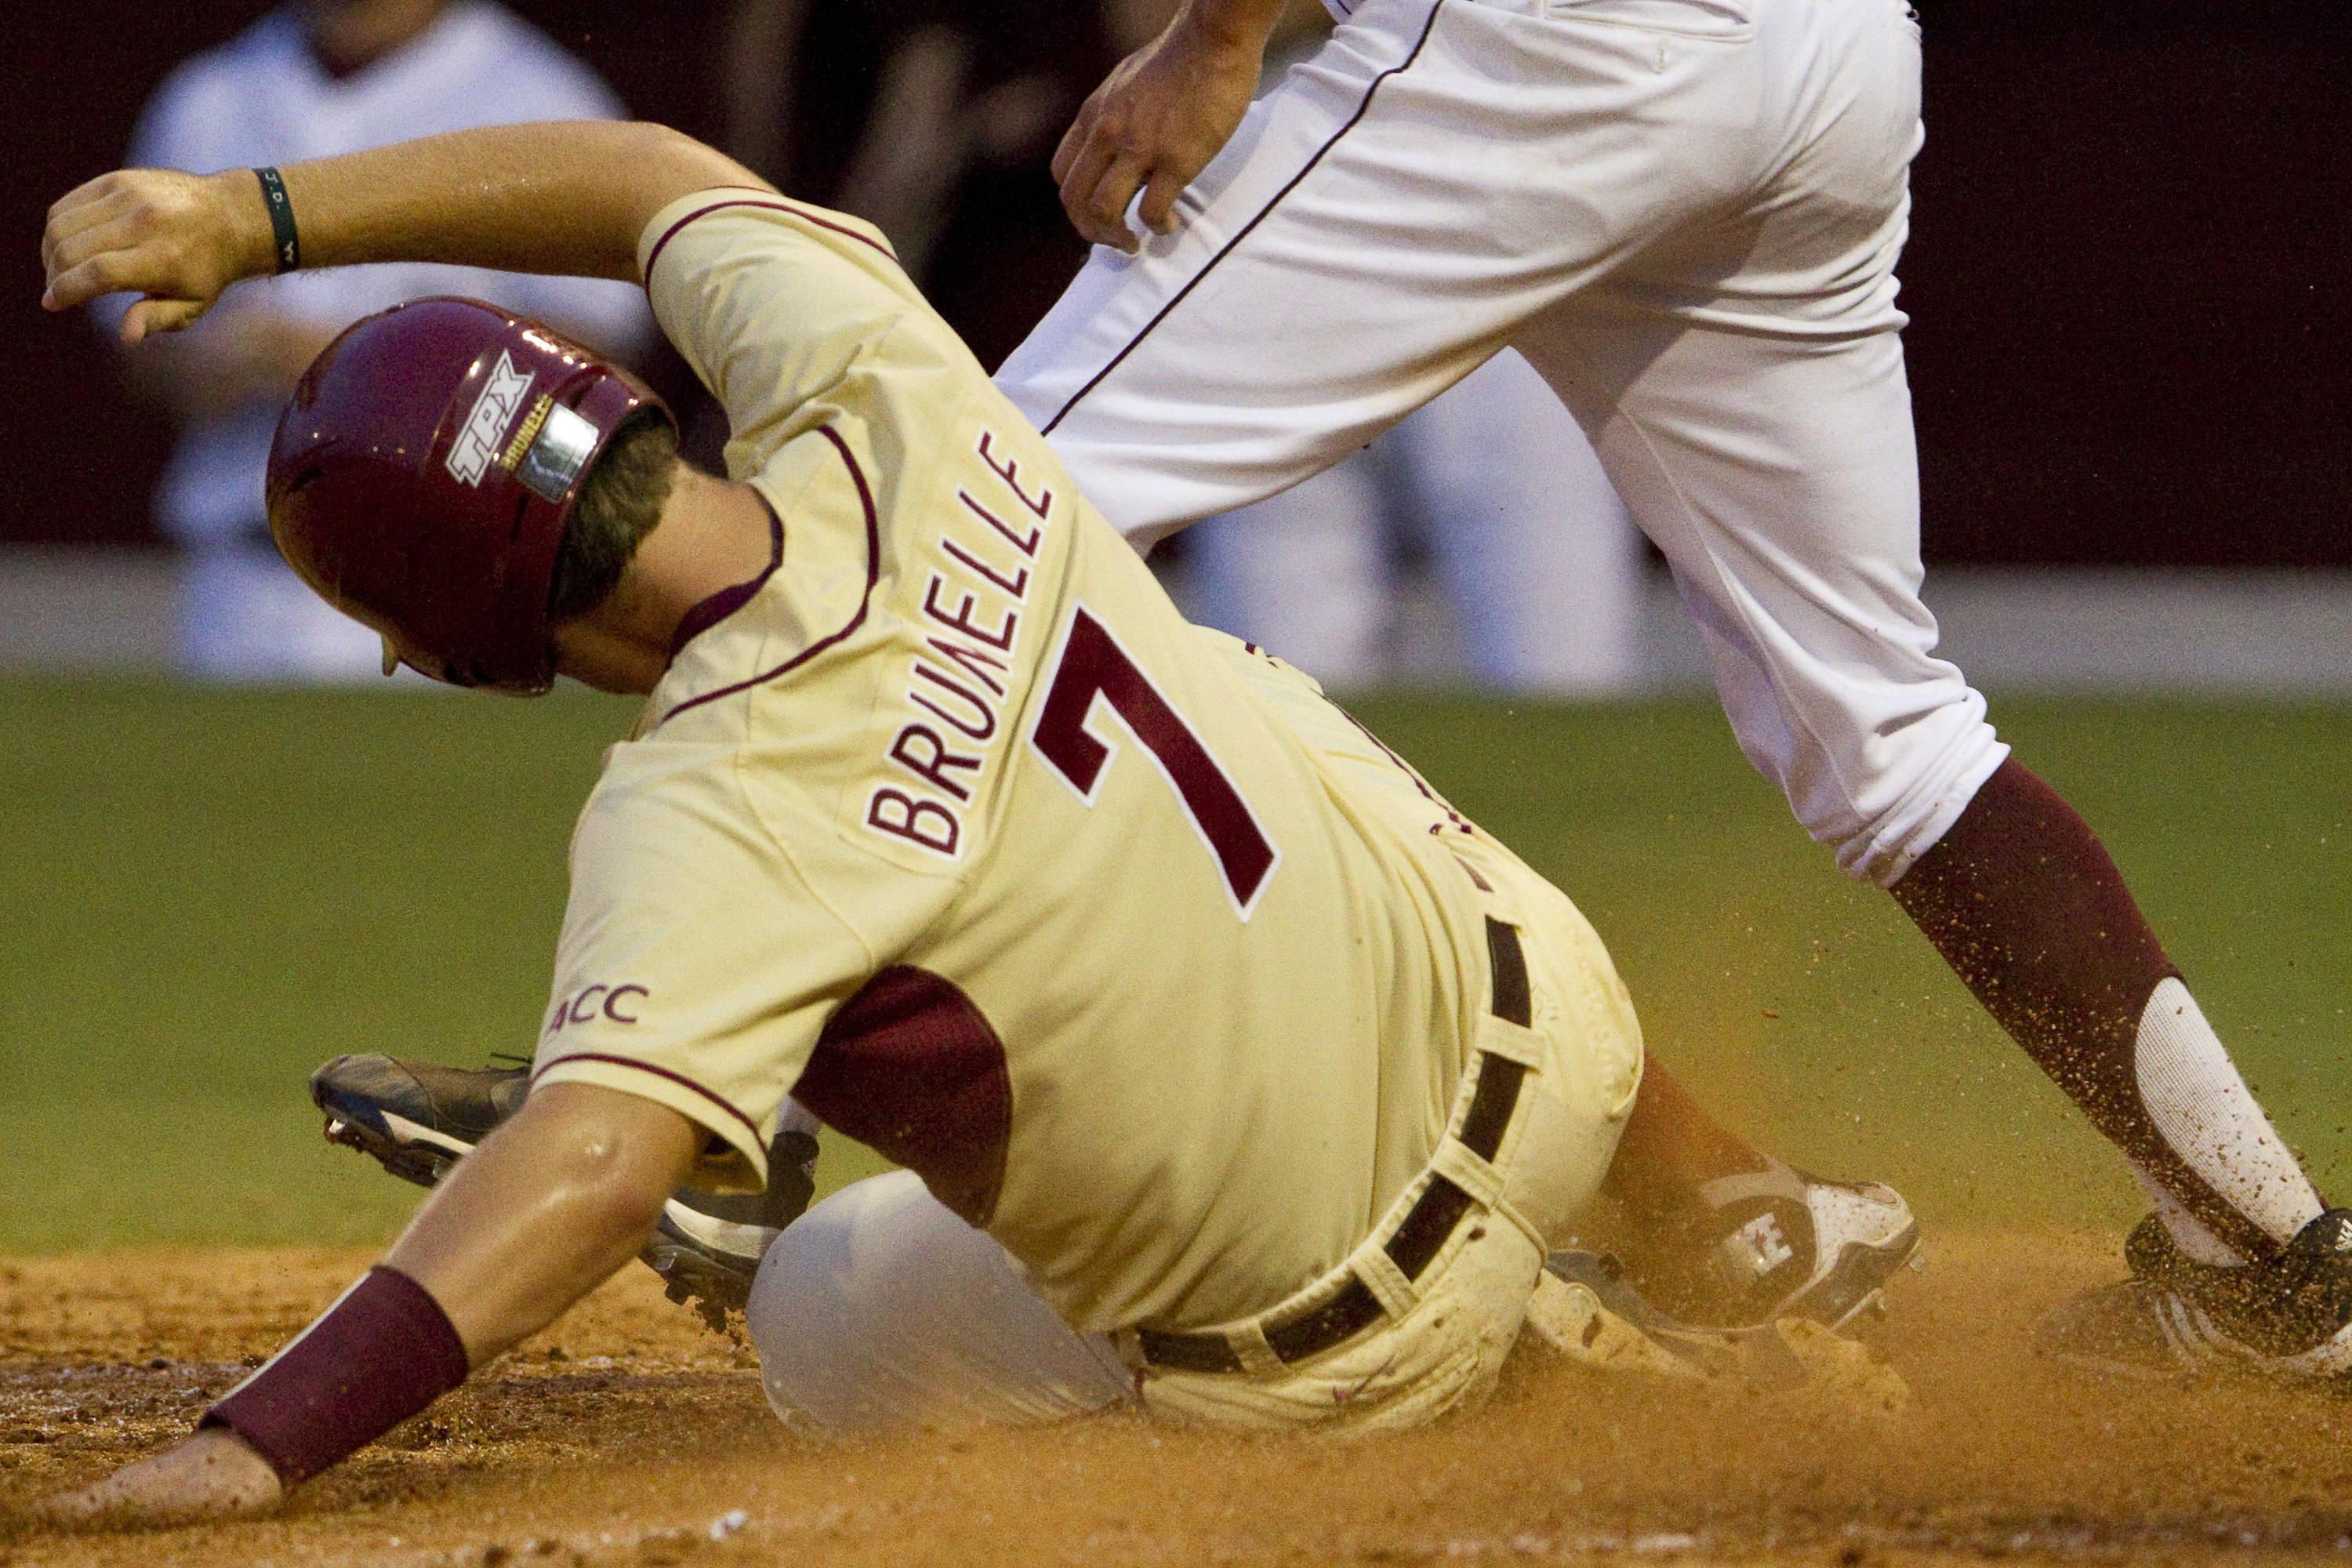 Parker Brunelle (7) slides into home plate.